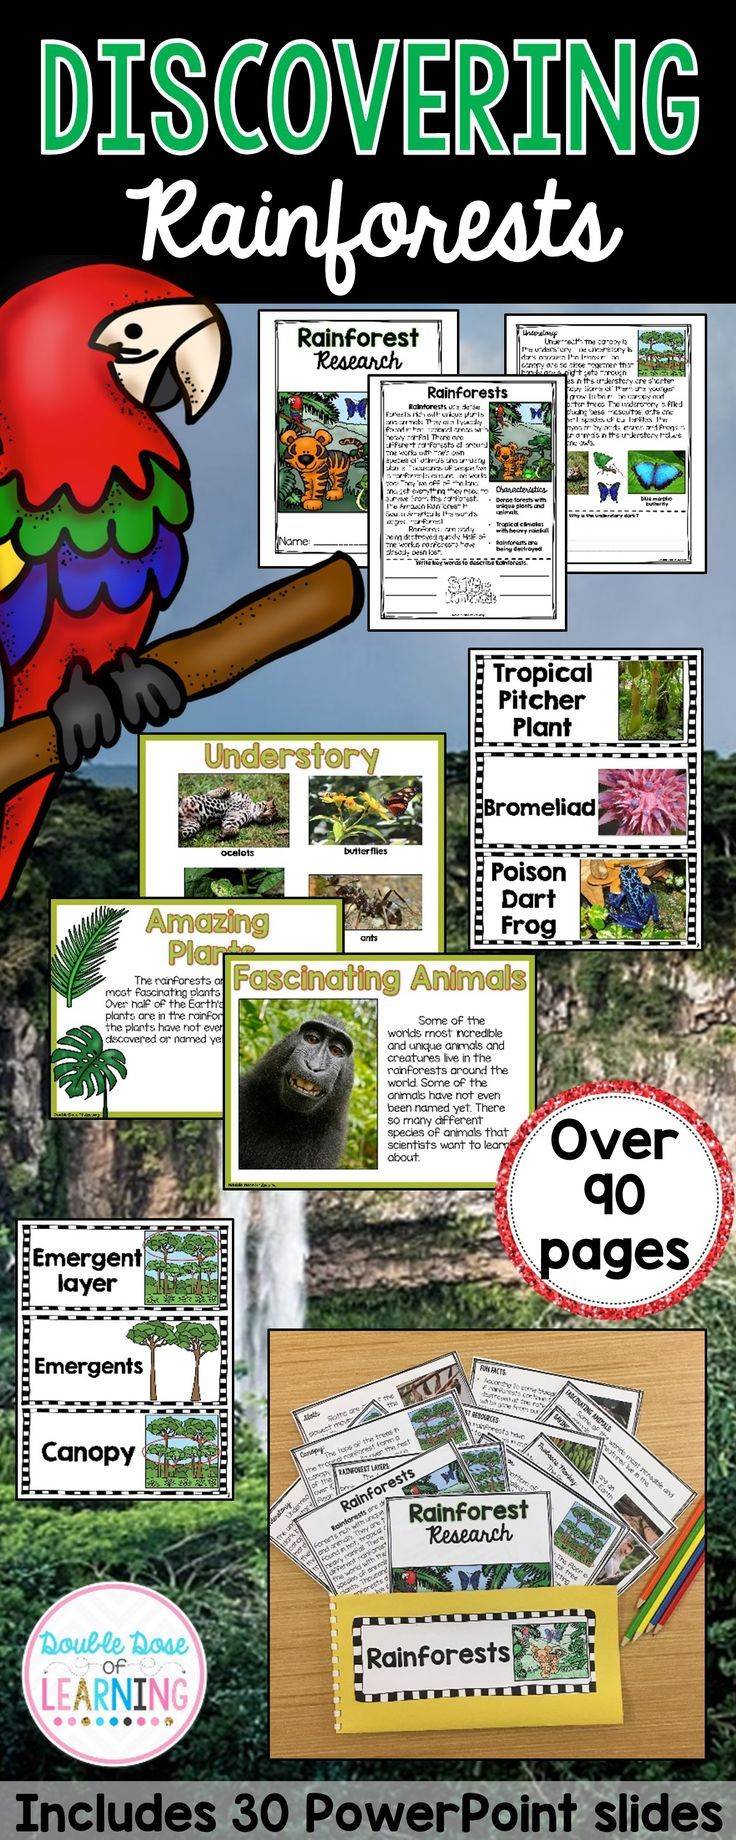 asily and thoroughly teach the Biomes with this Rainforest Research Unit with ready to go materials and PowerPoint! This unit is interactive and utilizes multimodal strategies to increase student engagement and outcomes. The Rainforest unit is a comprehensive week long unit that integrates technology, vocabulary, writing, art, reading strategies and more! Students will respond to informational text by answering questions in a student booklet in a variety of formats.